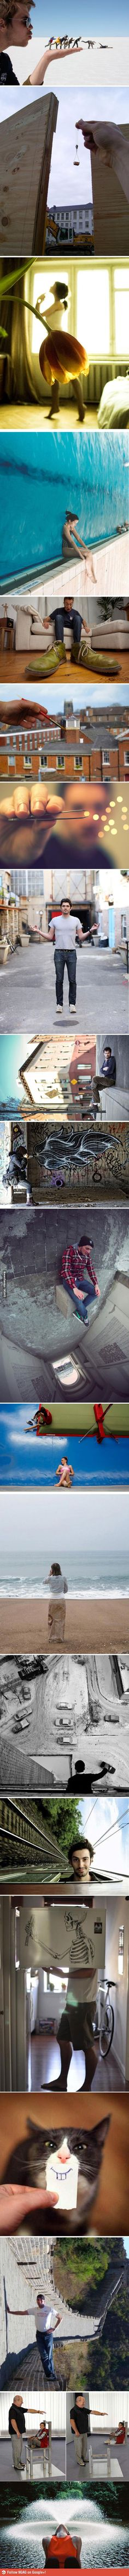 Awesome perspective photography